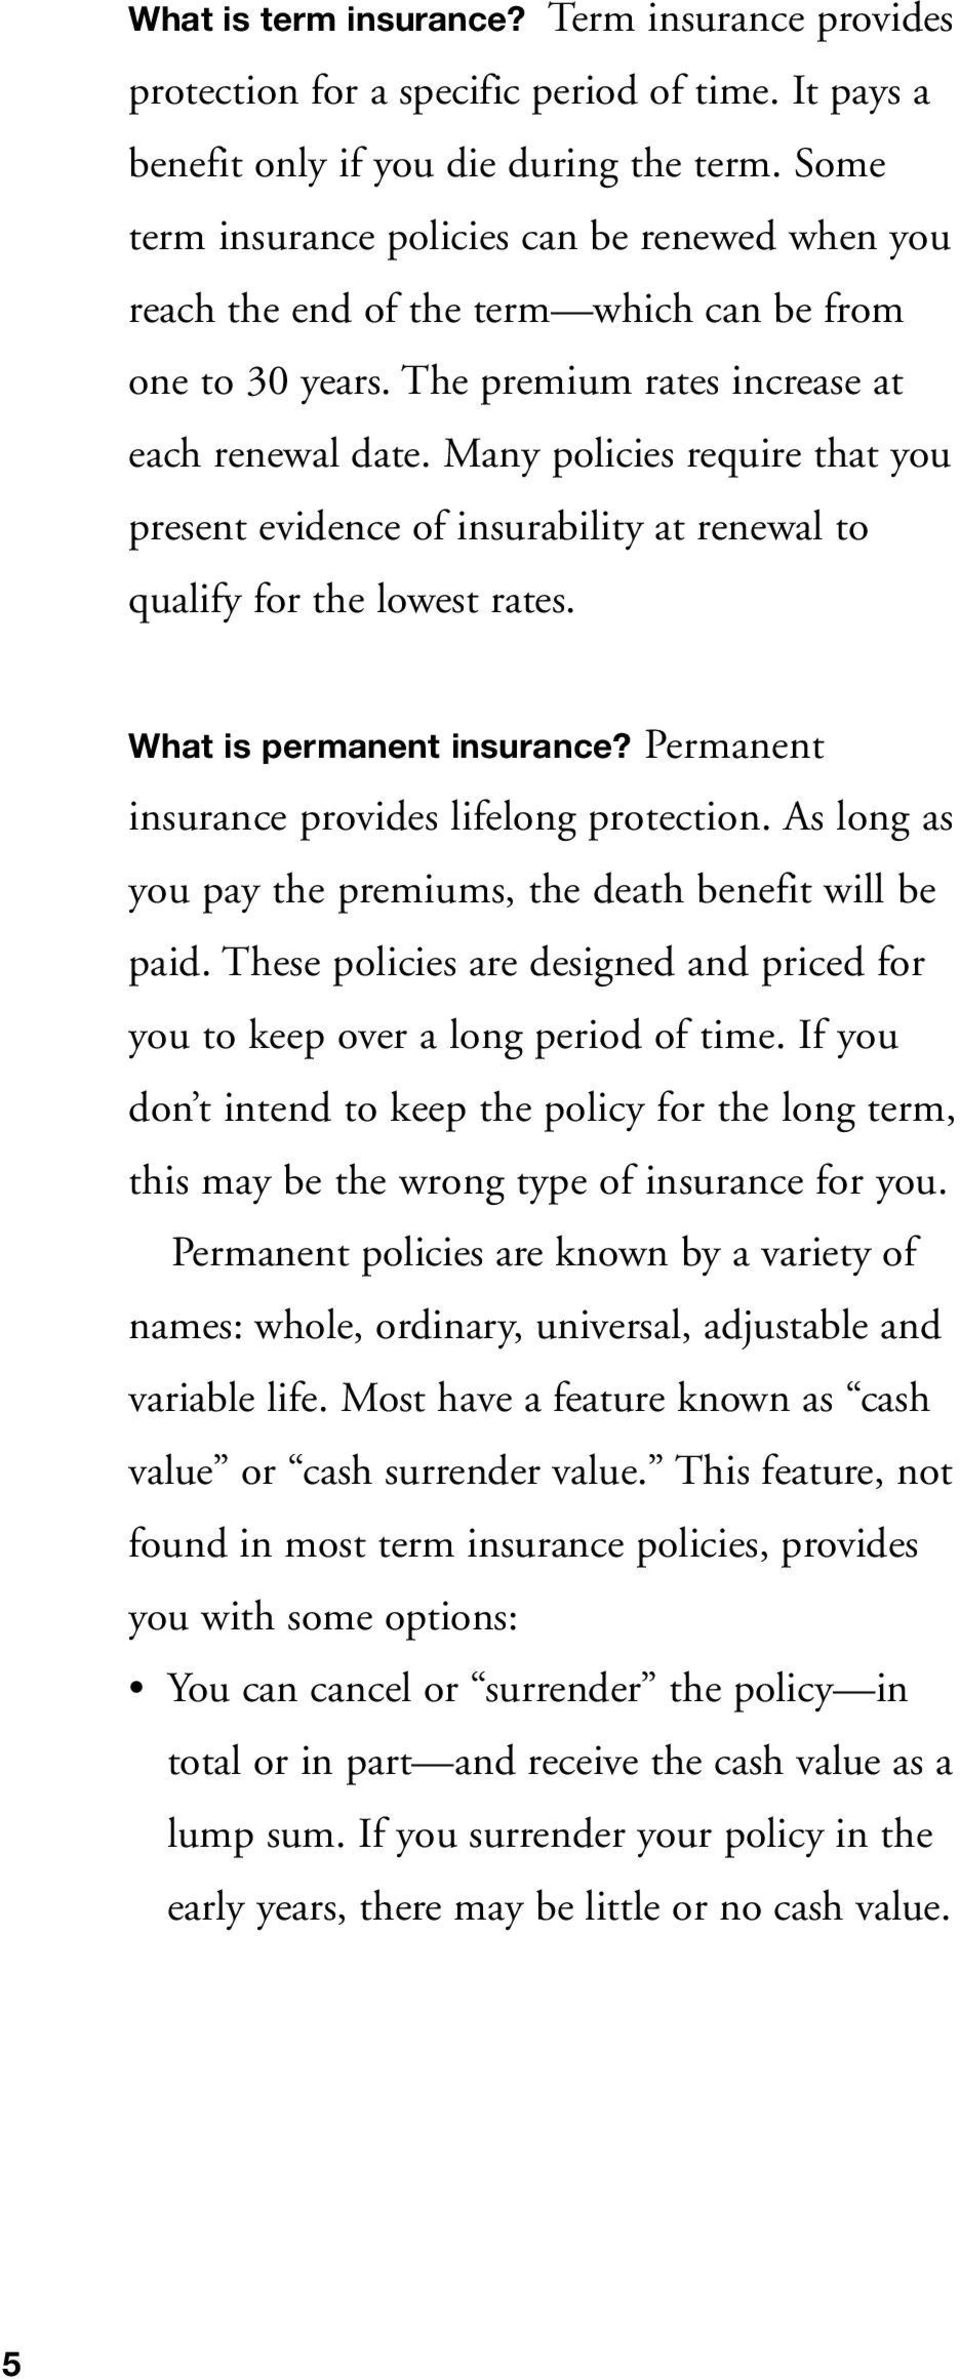 Many policies require that you present evidence of insurability at renewal to qualify for the lowest rates. What is permanent insurance? Permanent insurance provides lifelong protection.